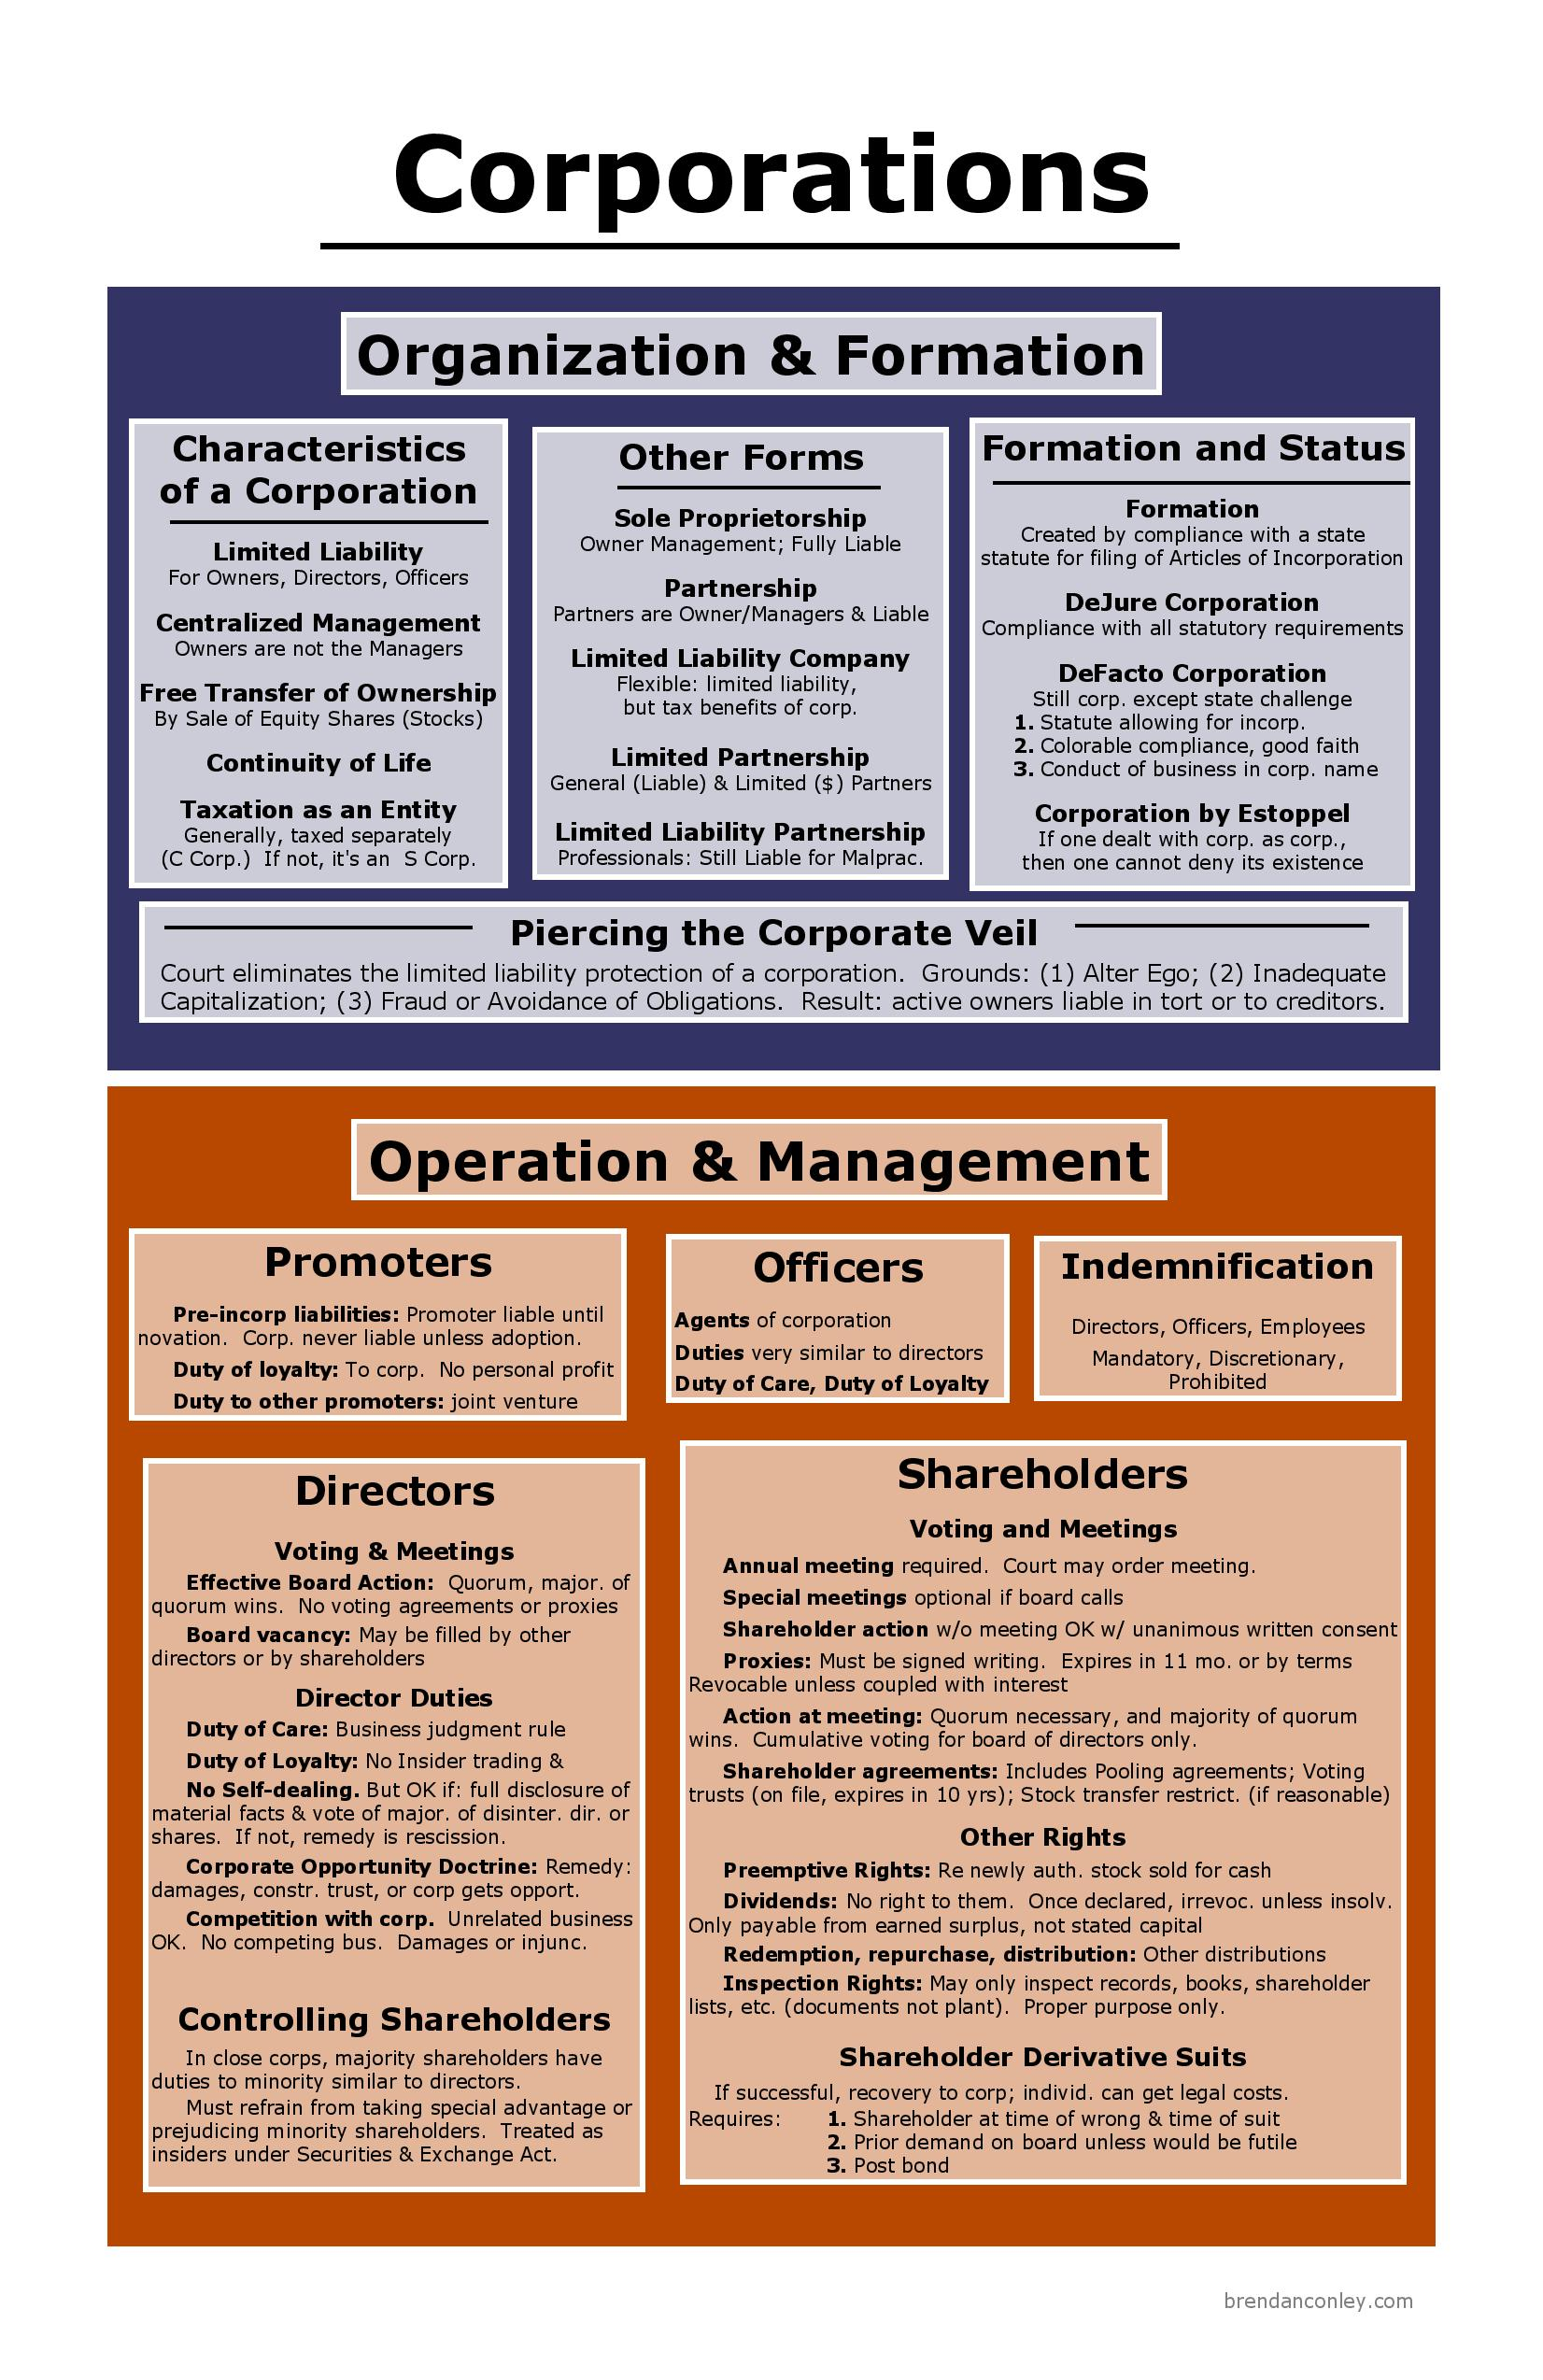 organizational management and operations essay Organizational analysis  conducting a periodic detailed organizational analysis can be a useful way for management  organizational structure and operations.